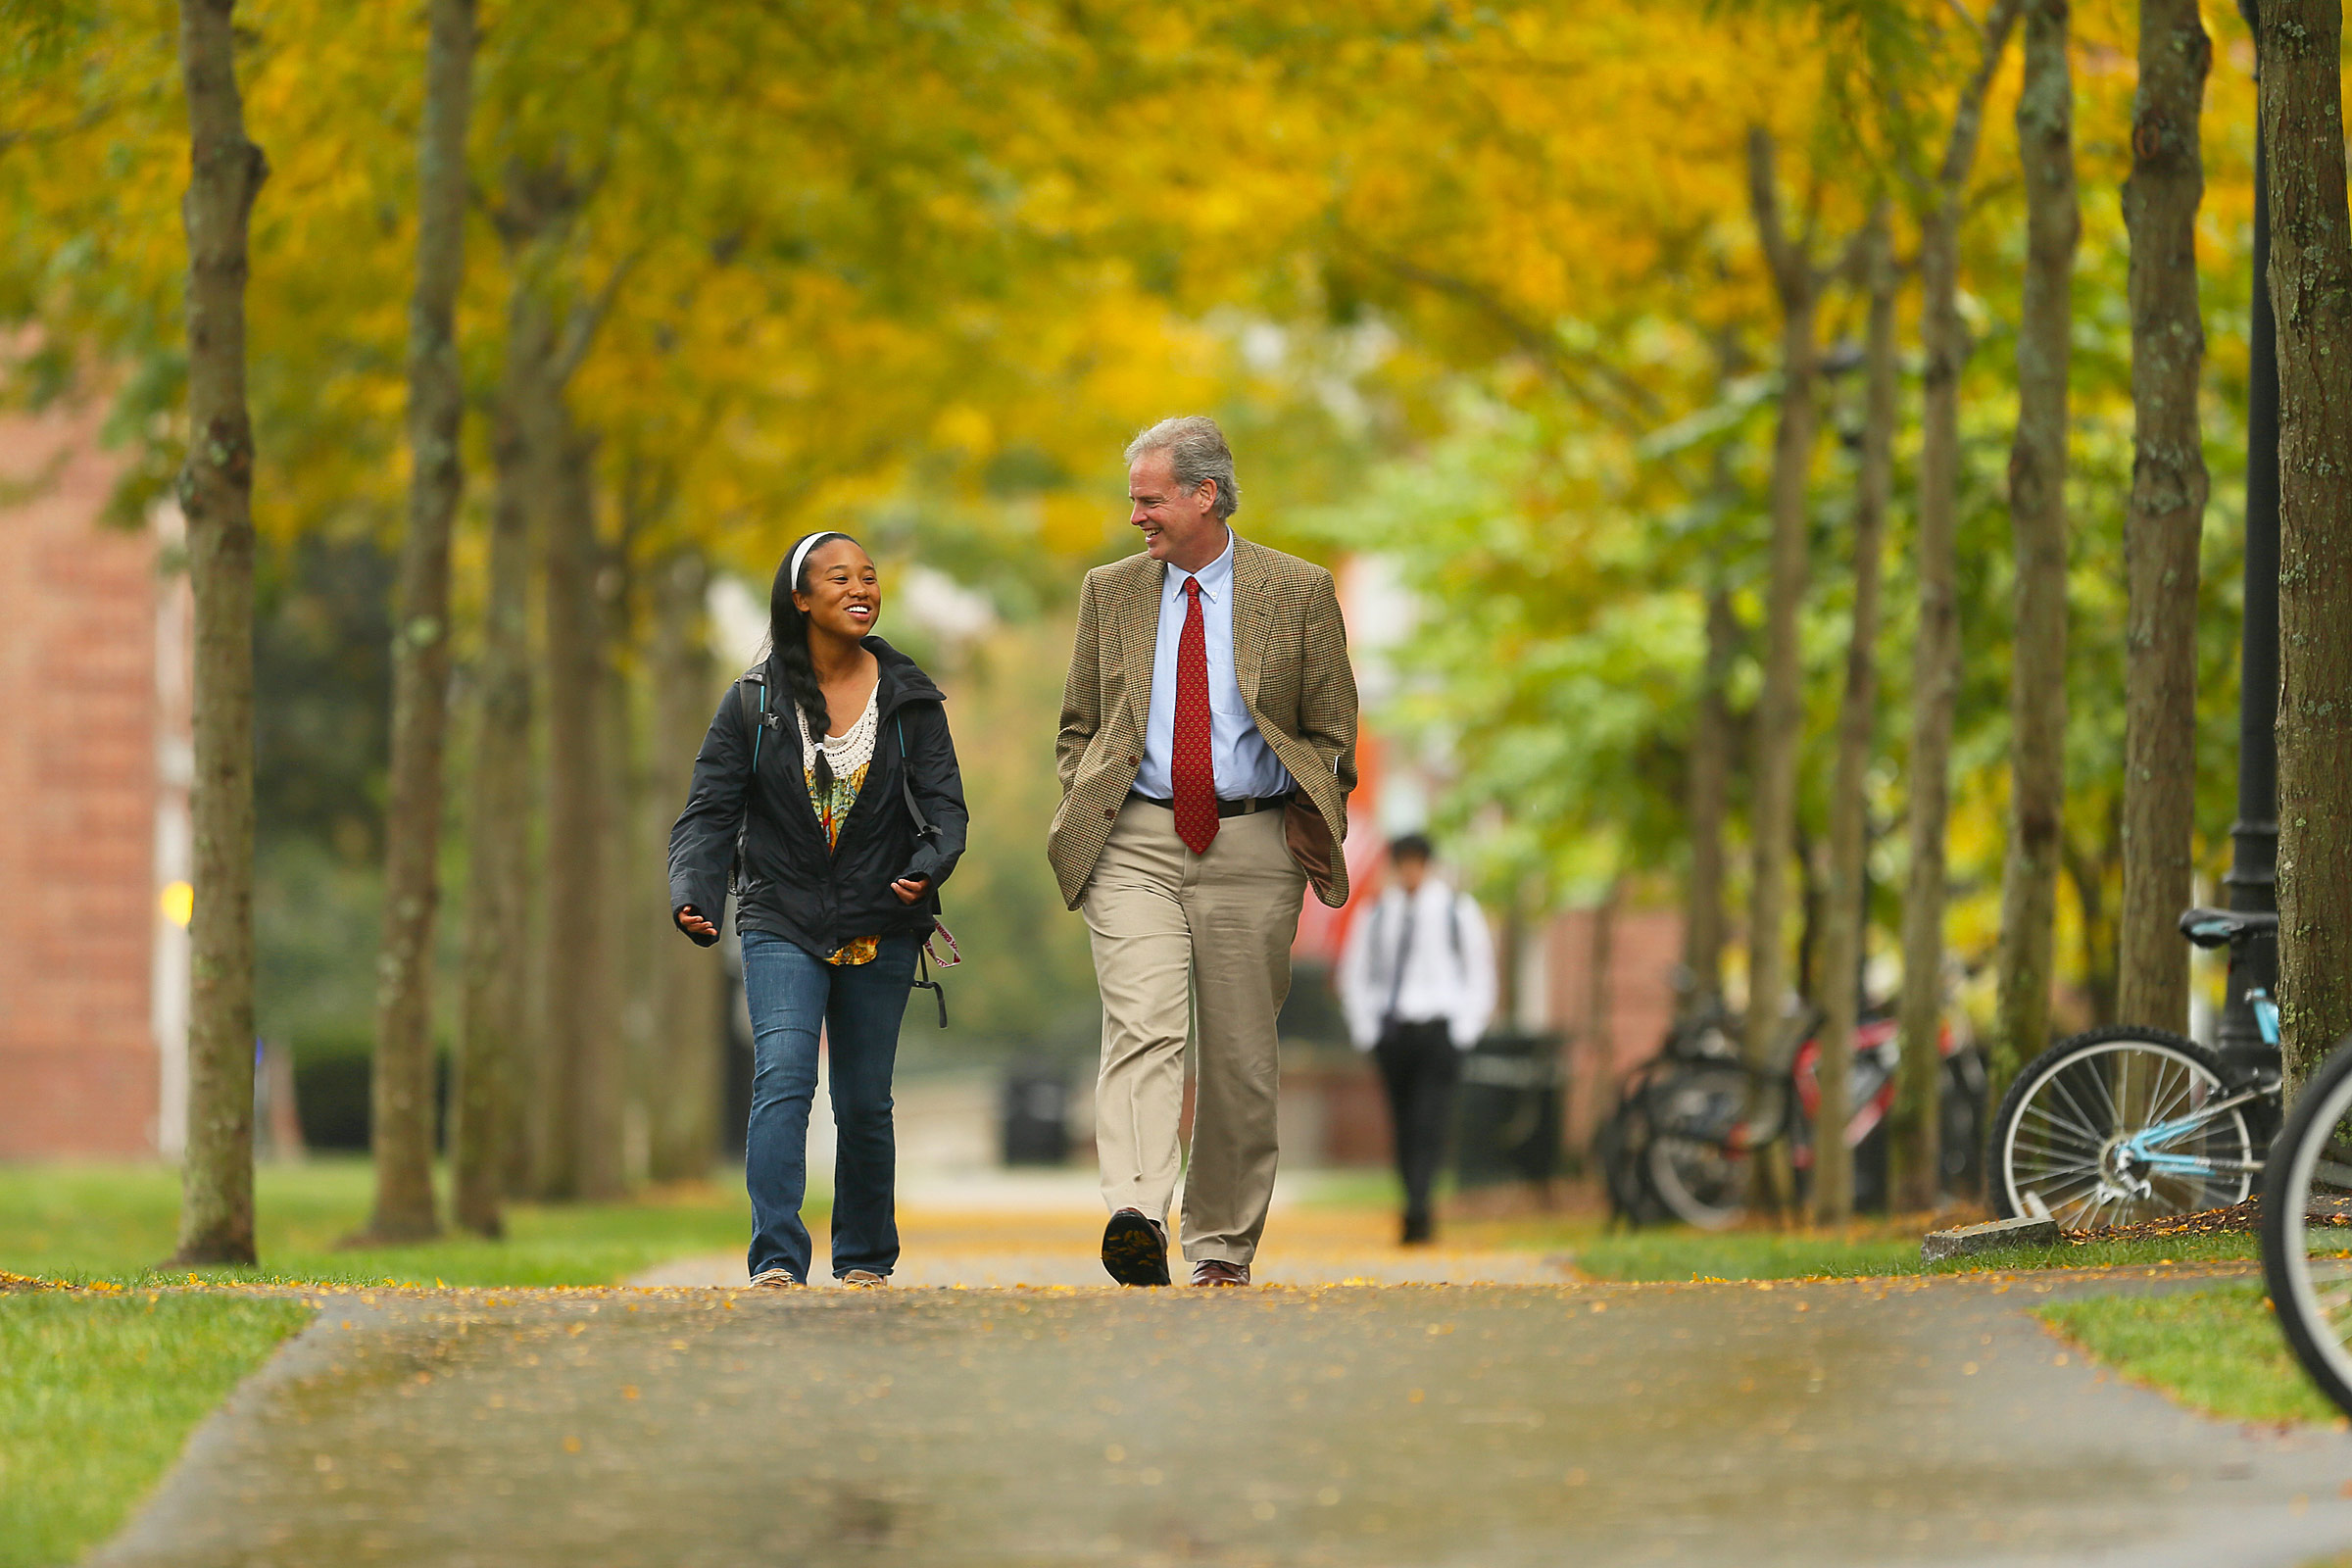 Fall colors are out as Phillips Exeter principal Thomas Hassan walks with a student.